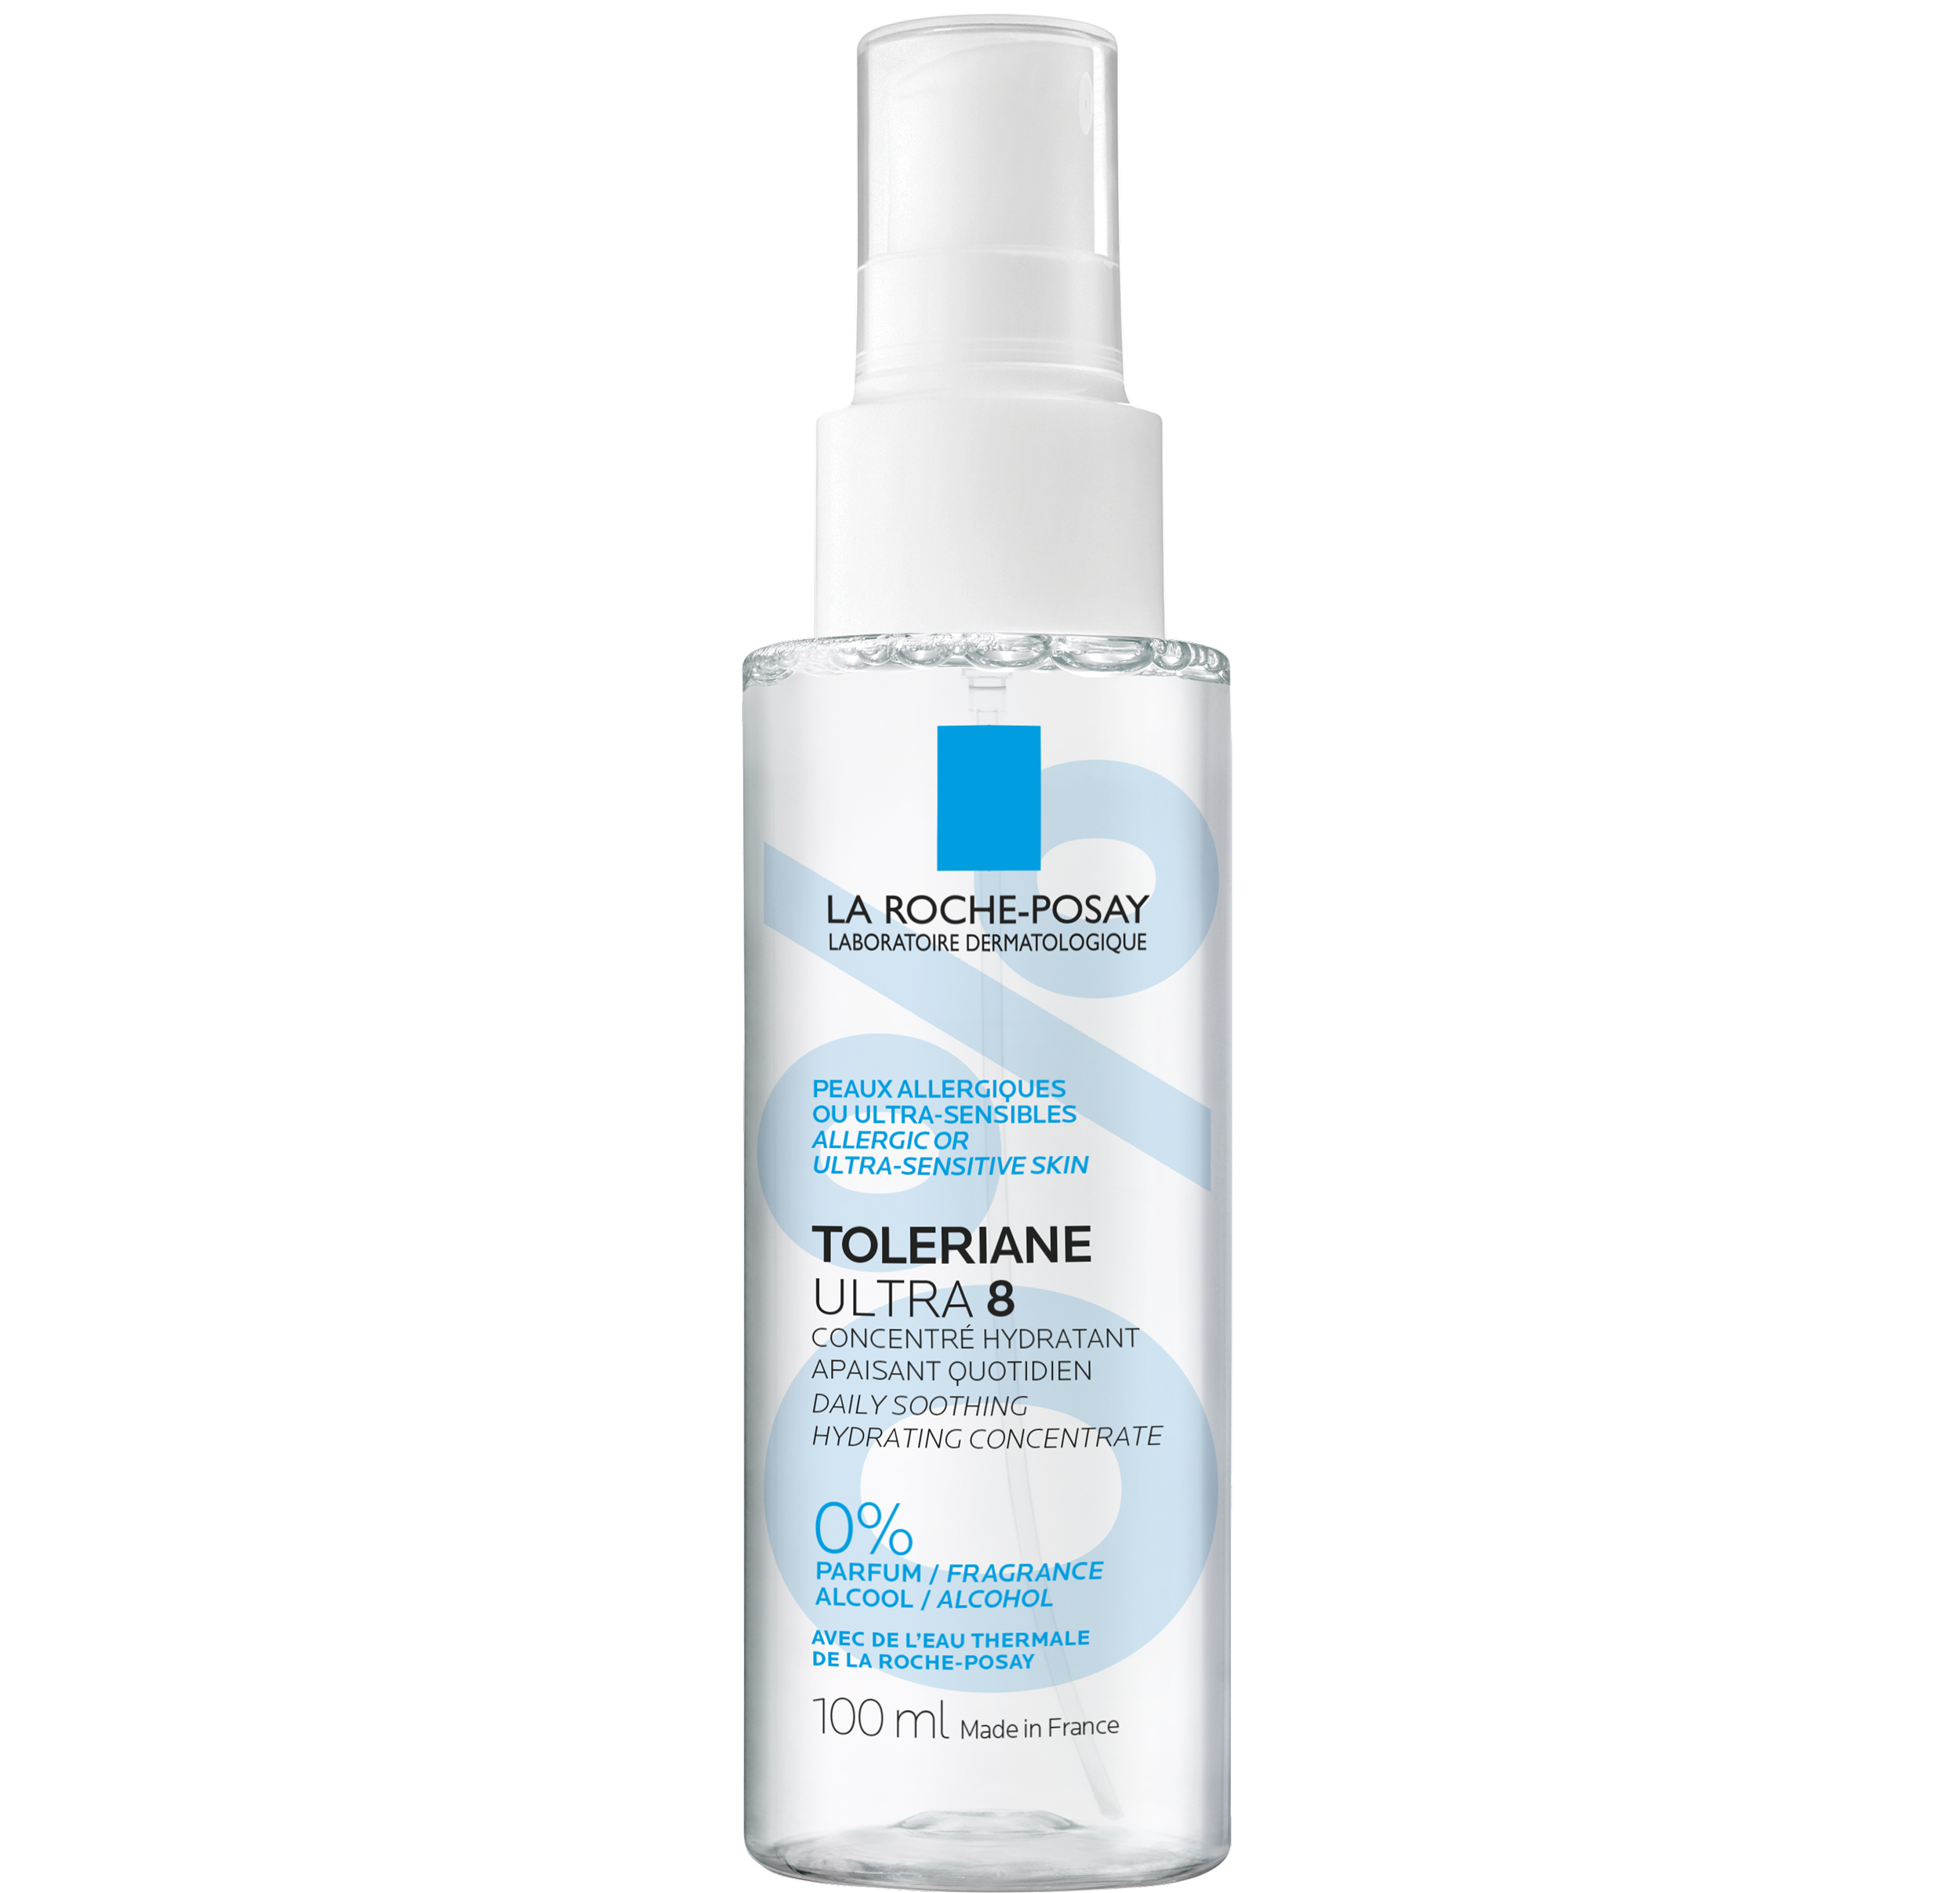 La Roche-Posay Toleriane Ultra 8 Daily Soothing Hydrating Concentrate